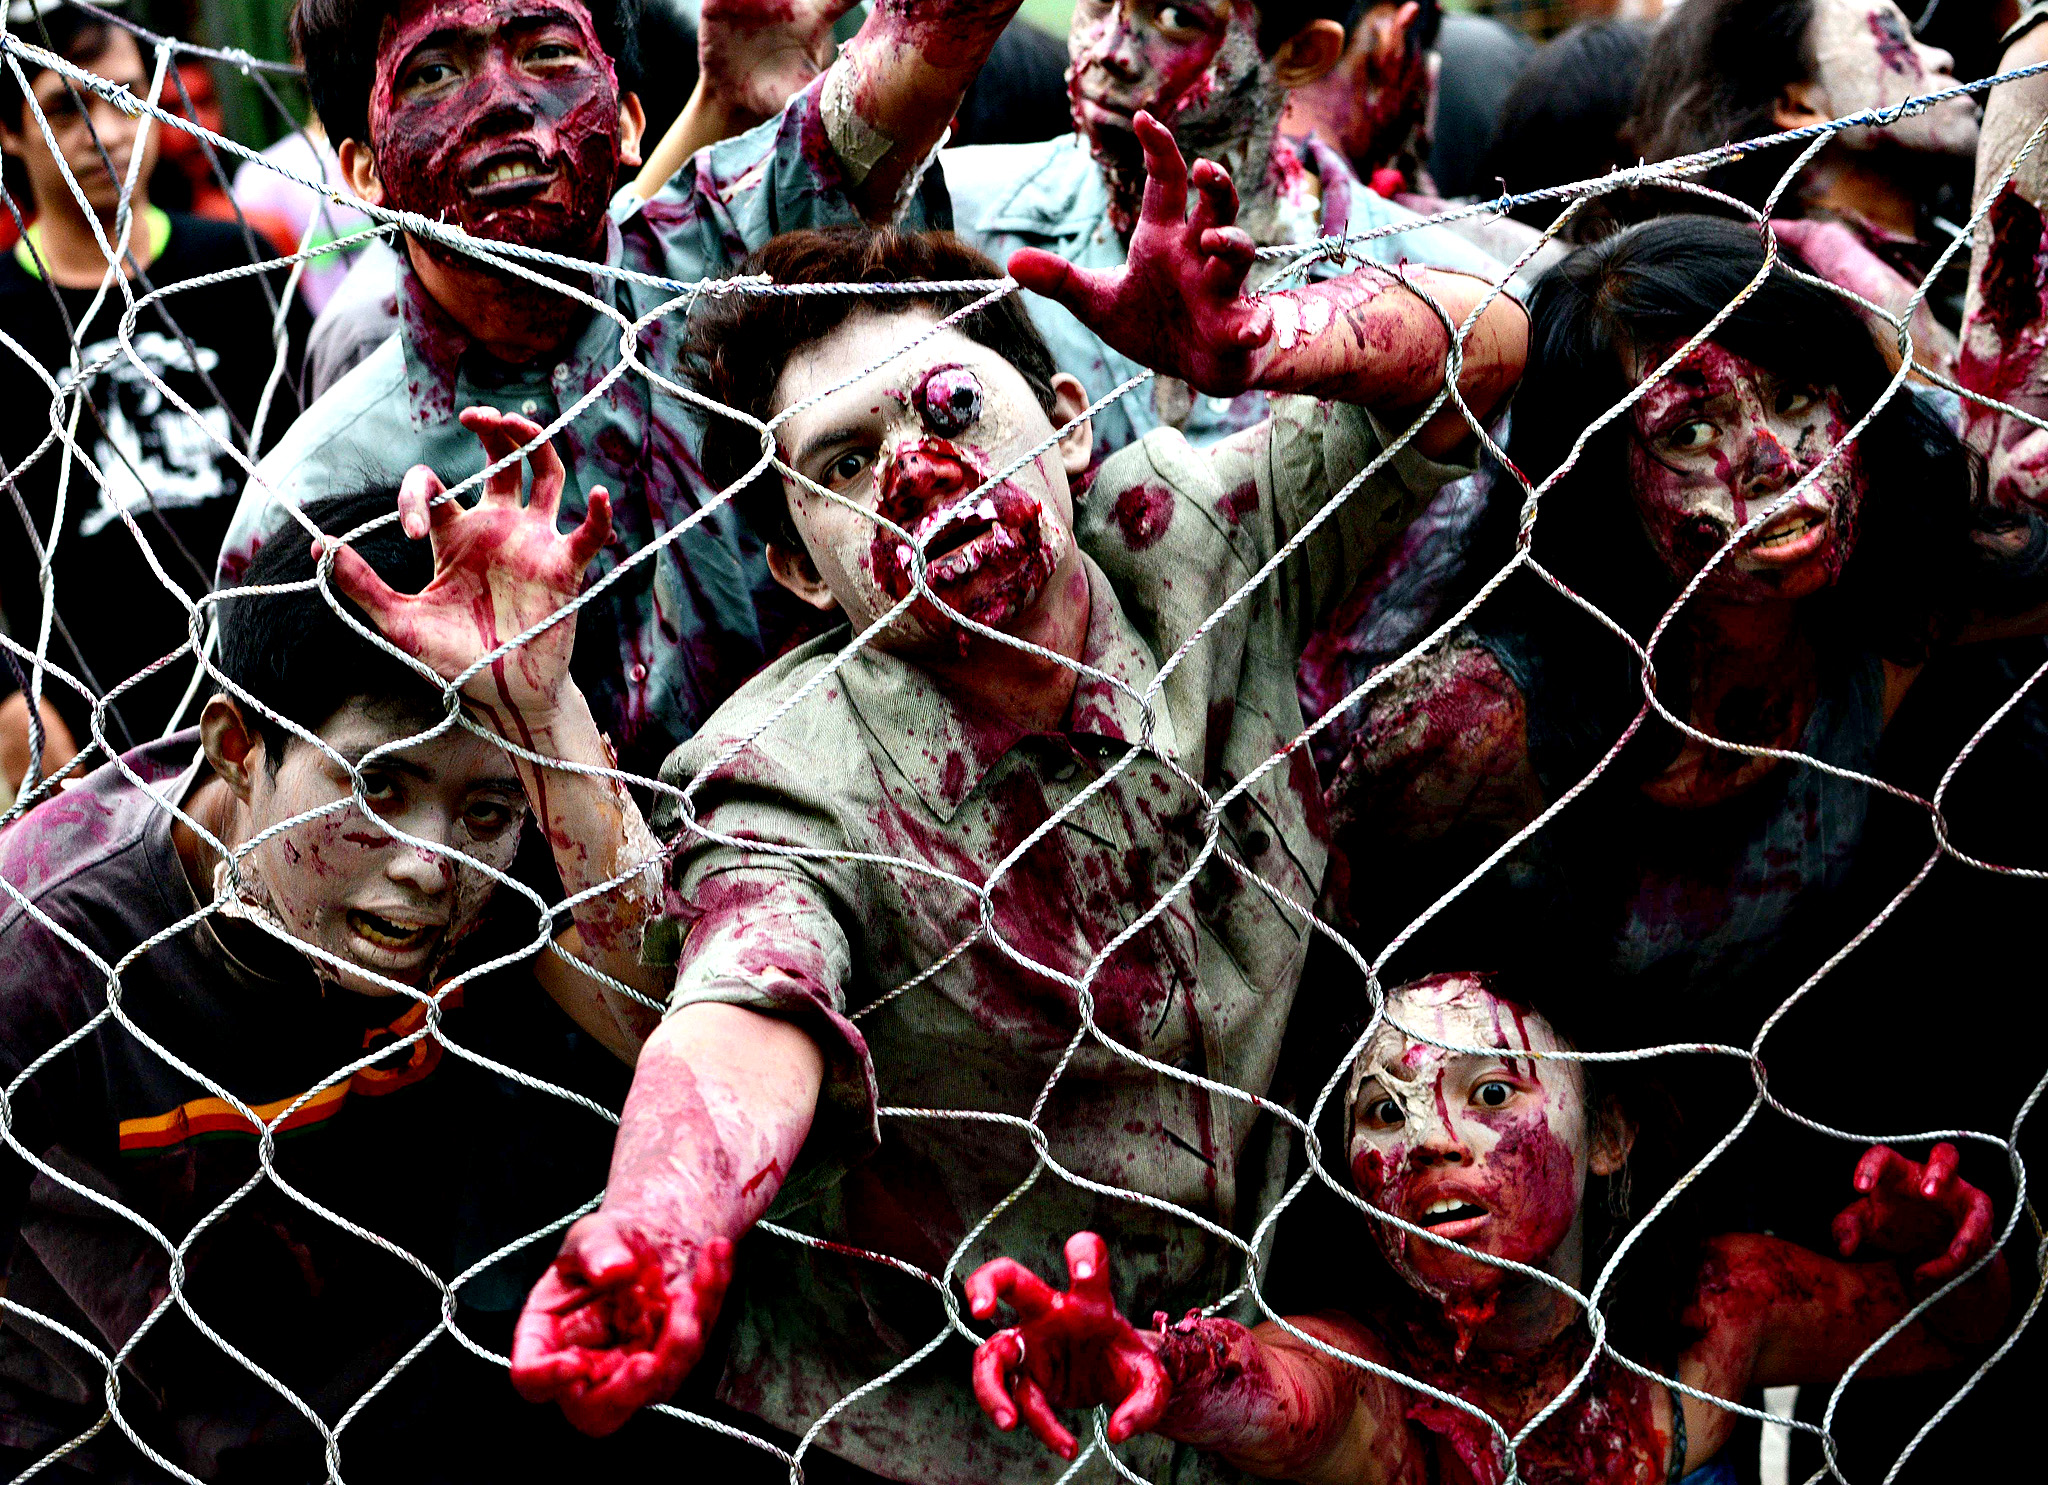 Students dressed as zombies participate in an annual Halloween Costume Parade in Manila on October 30, 2013. The activity aims to celebrate Halloween in a creative and fun way through showcase of different scary costumes.